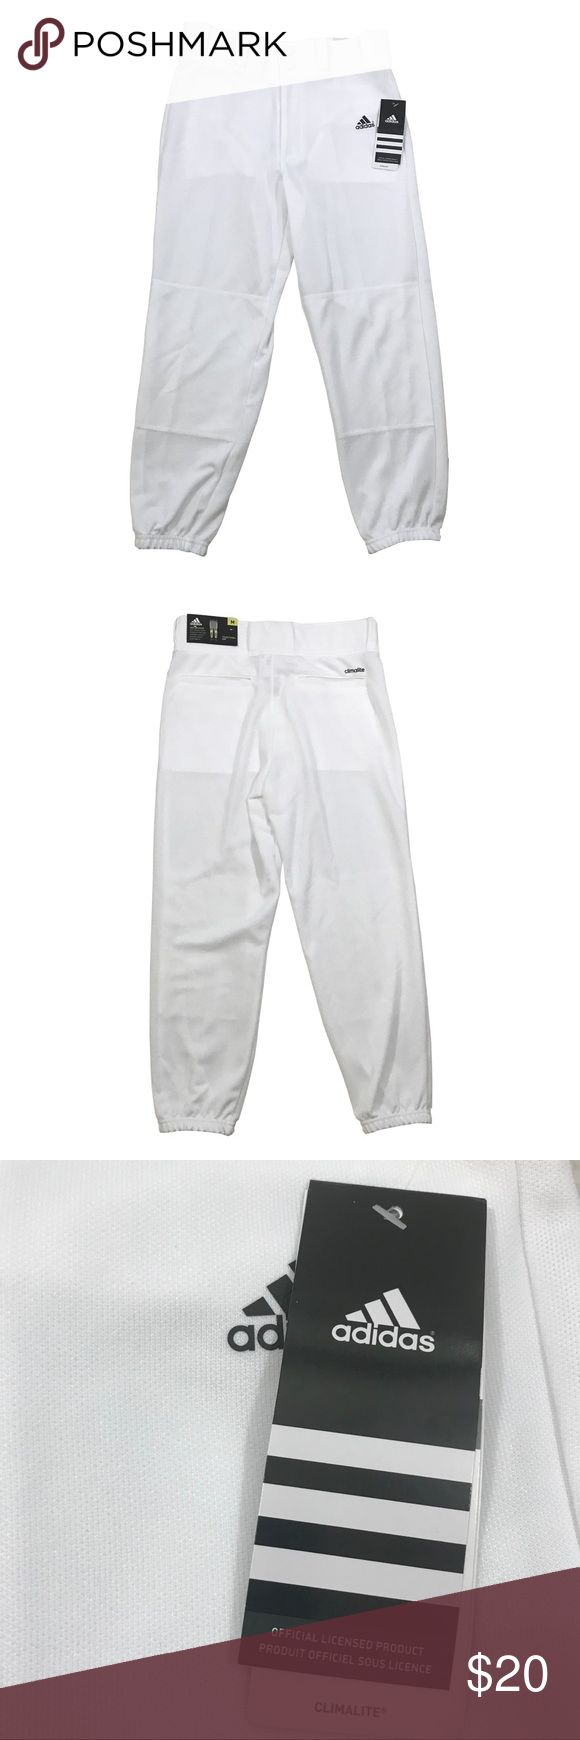 🆕 ADIDAS WHITE BOY'S BASEBALL PANTS MEDIUM 🆕 Size: Medium Waist: 27 Inches Length: 31 Inches Inseam: 21 Inches  Pants are BRAND NEW WITH TAGS!!! adidas Bottoms Sweatpants & Joggers